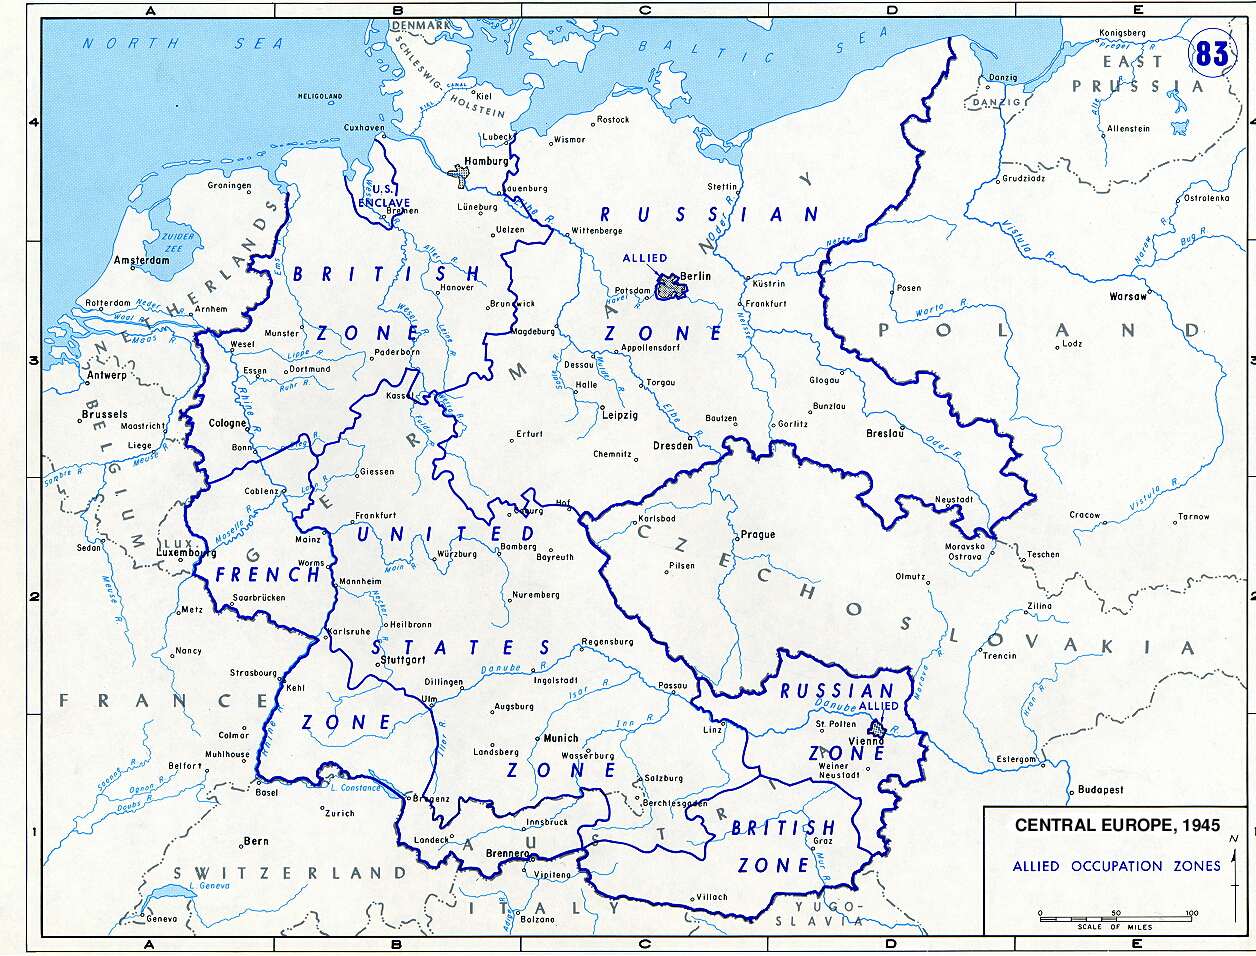 1945 occupied germany after the surrender k7_851945